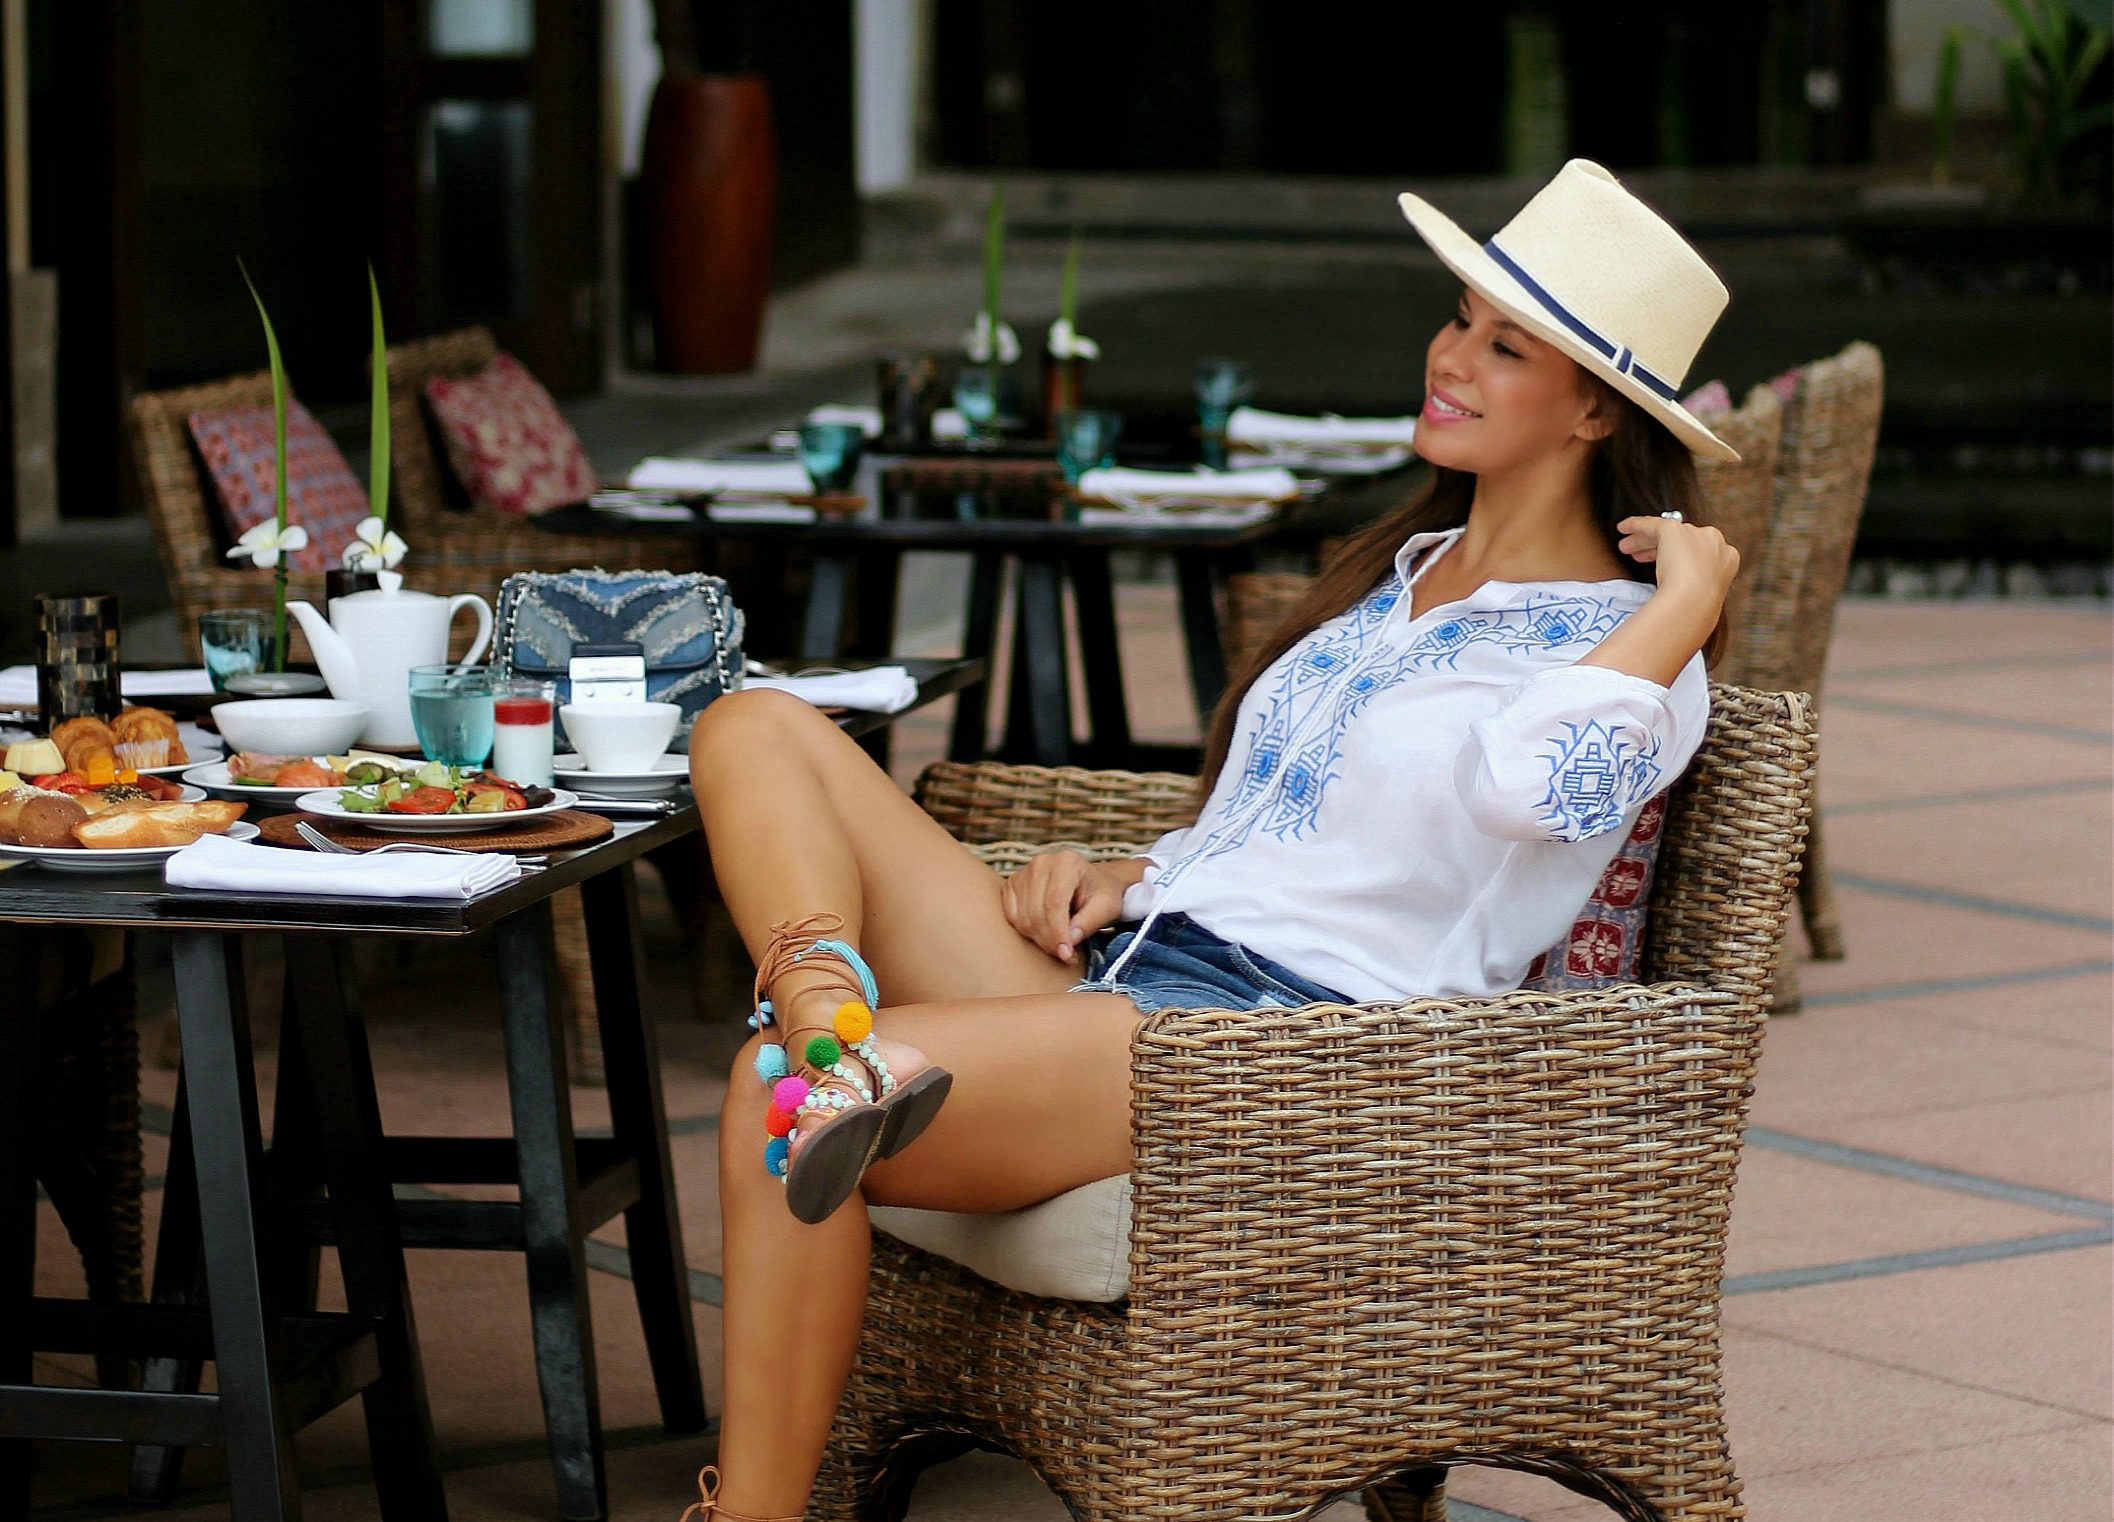 Tamara Chloé, 5 cafe's you want to flaunt on Instagram, The legian Bali Hotel